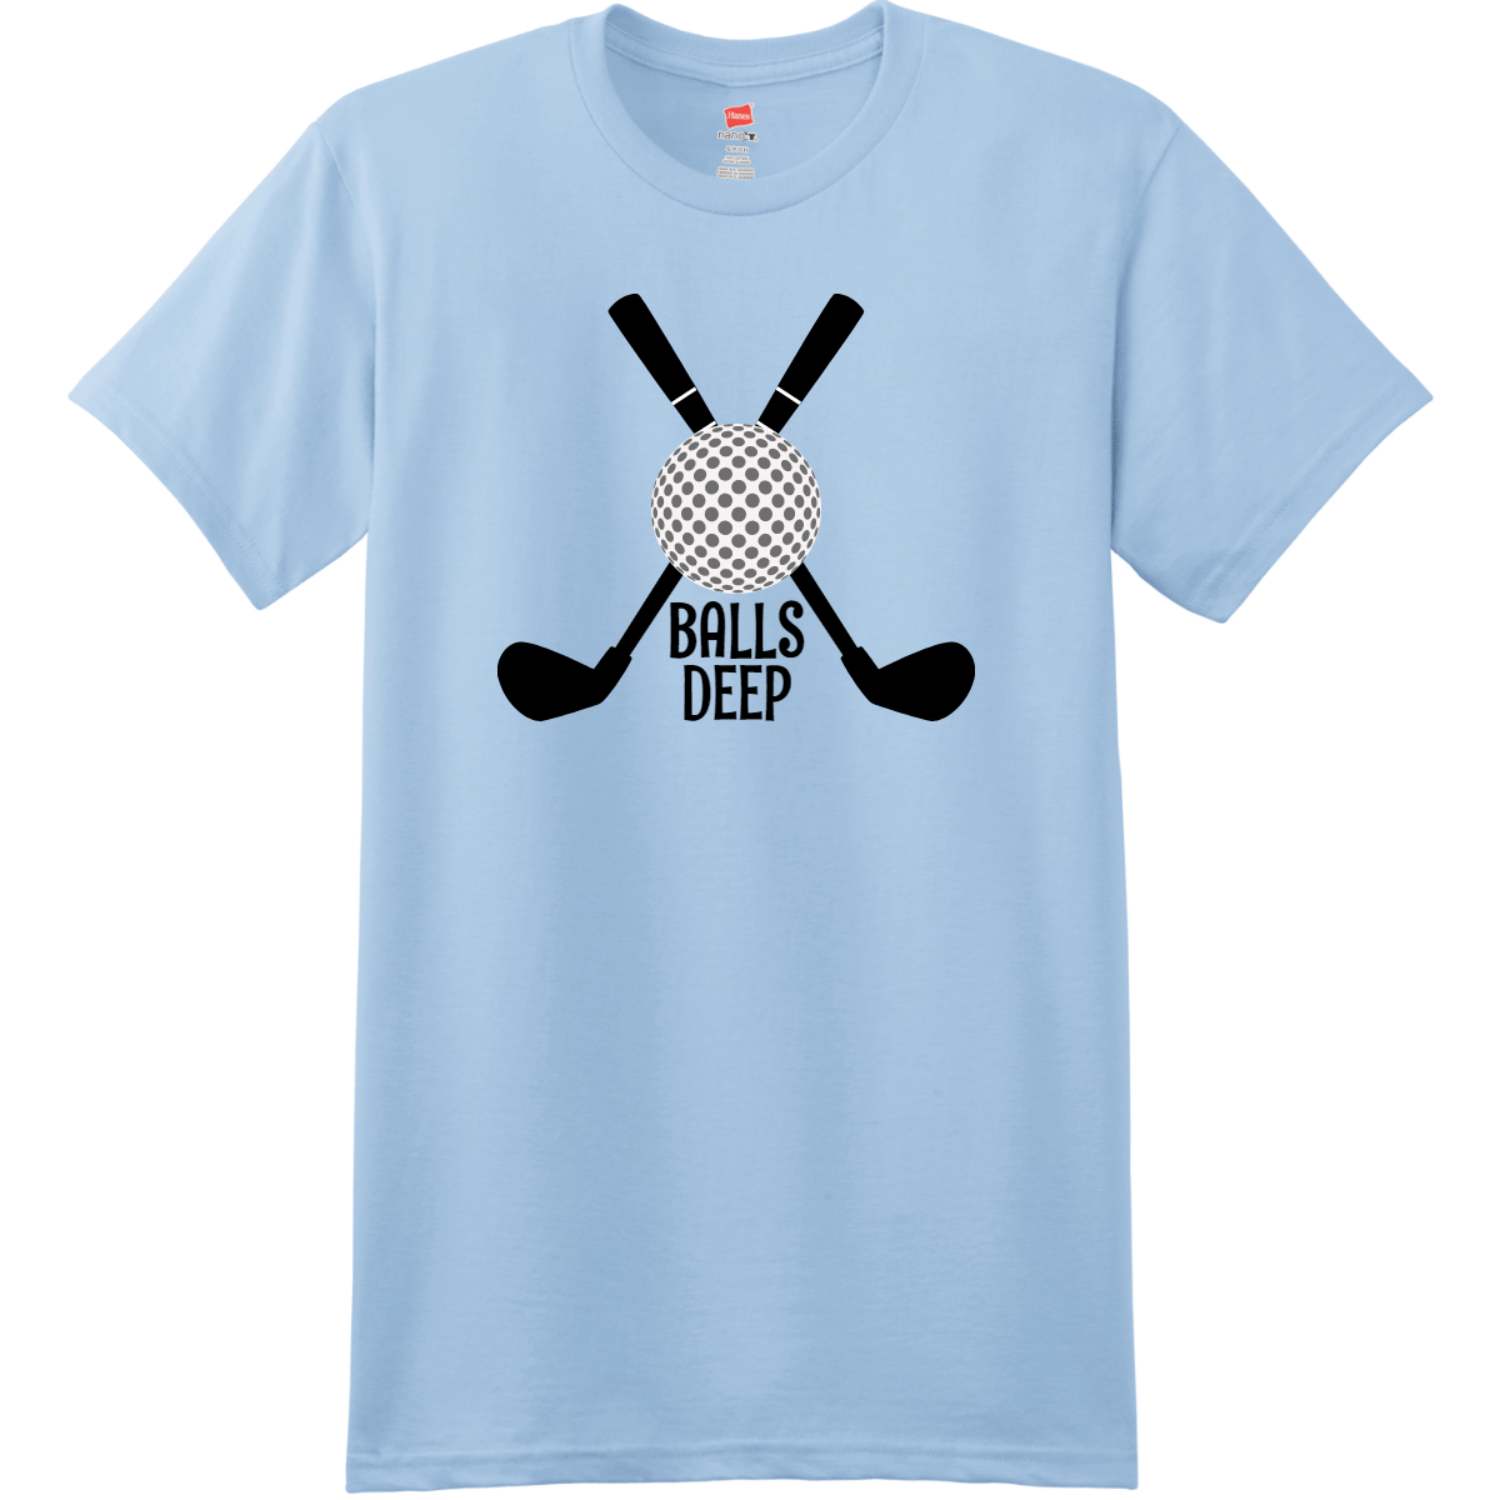 Balls Deep Funny Golf T Shirt Light Blue Hanes Nano 4980 Ringspun Cotton T Shirt